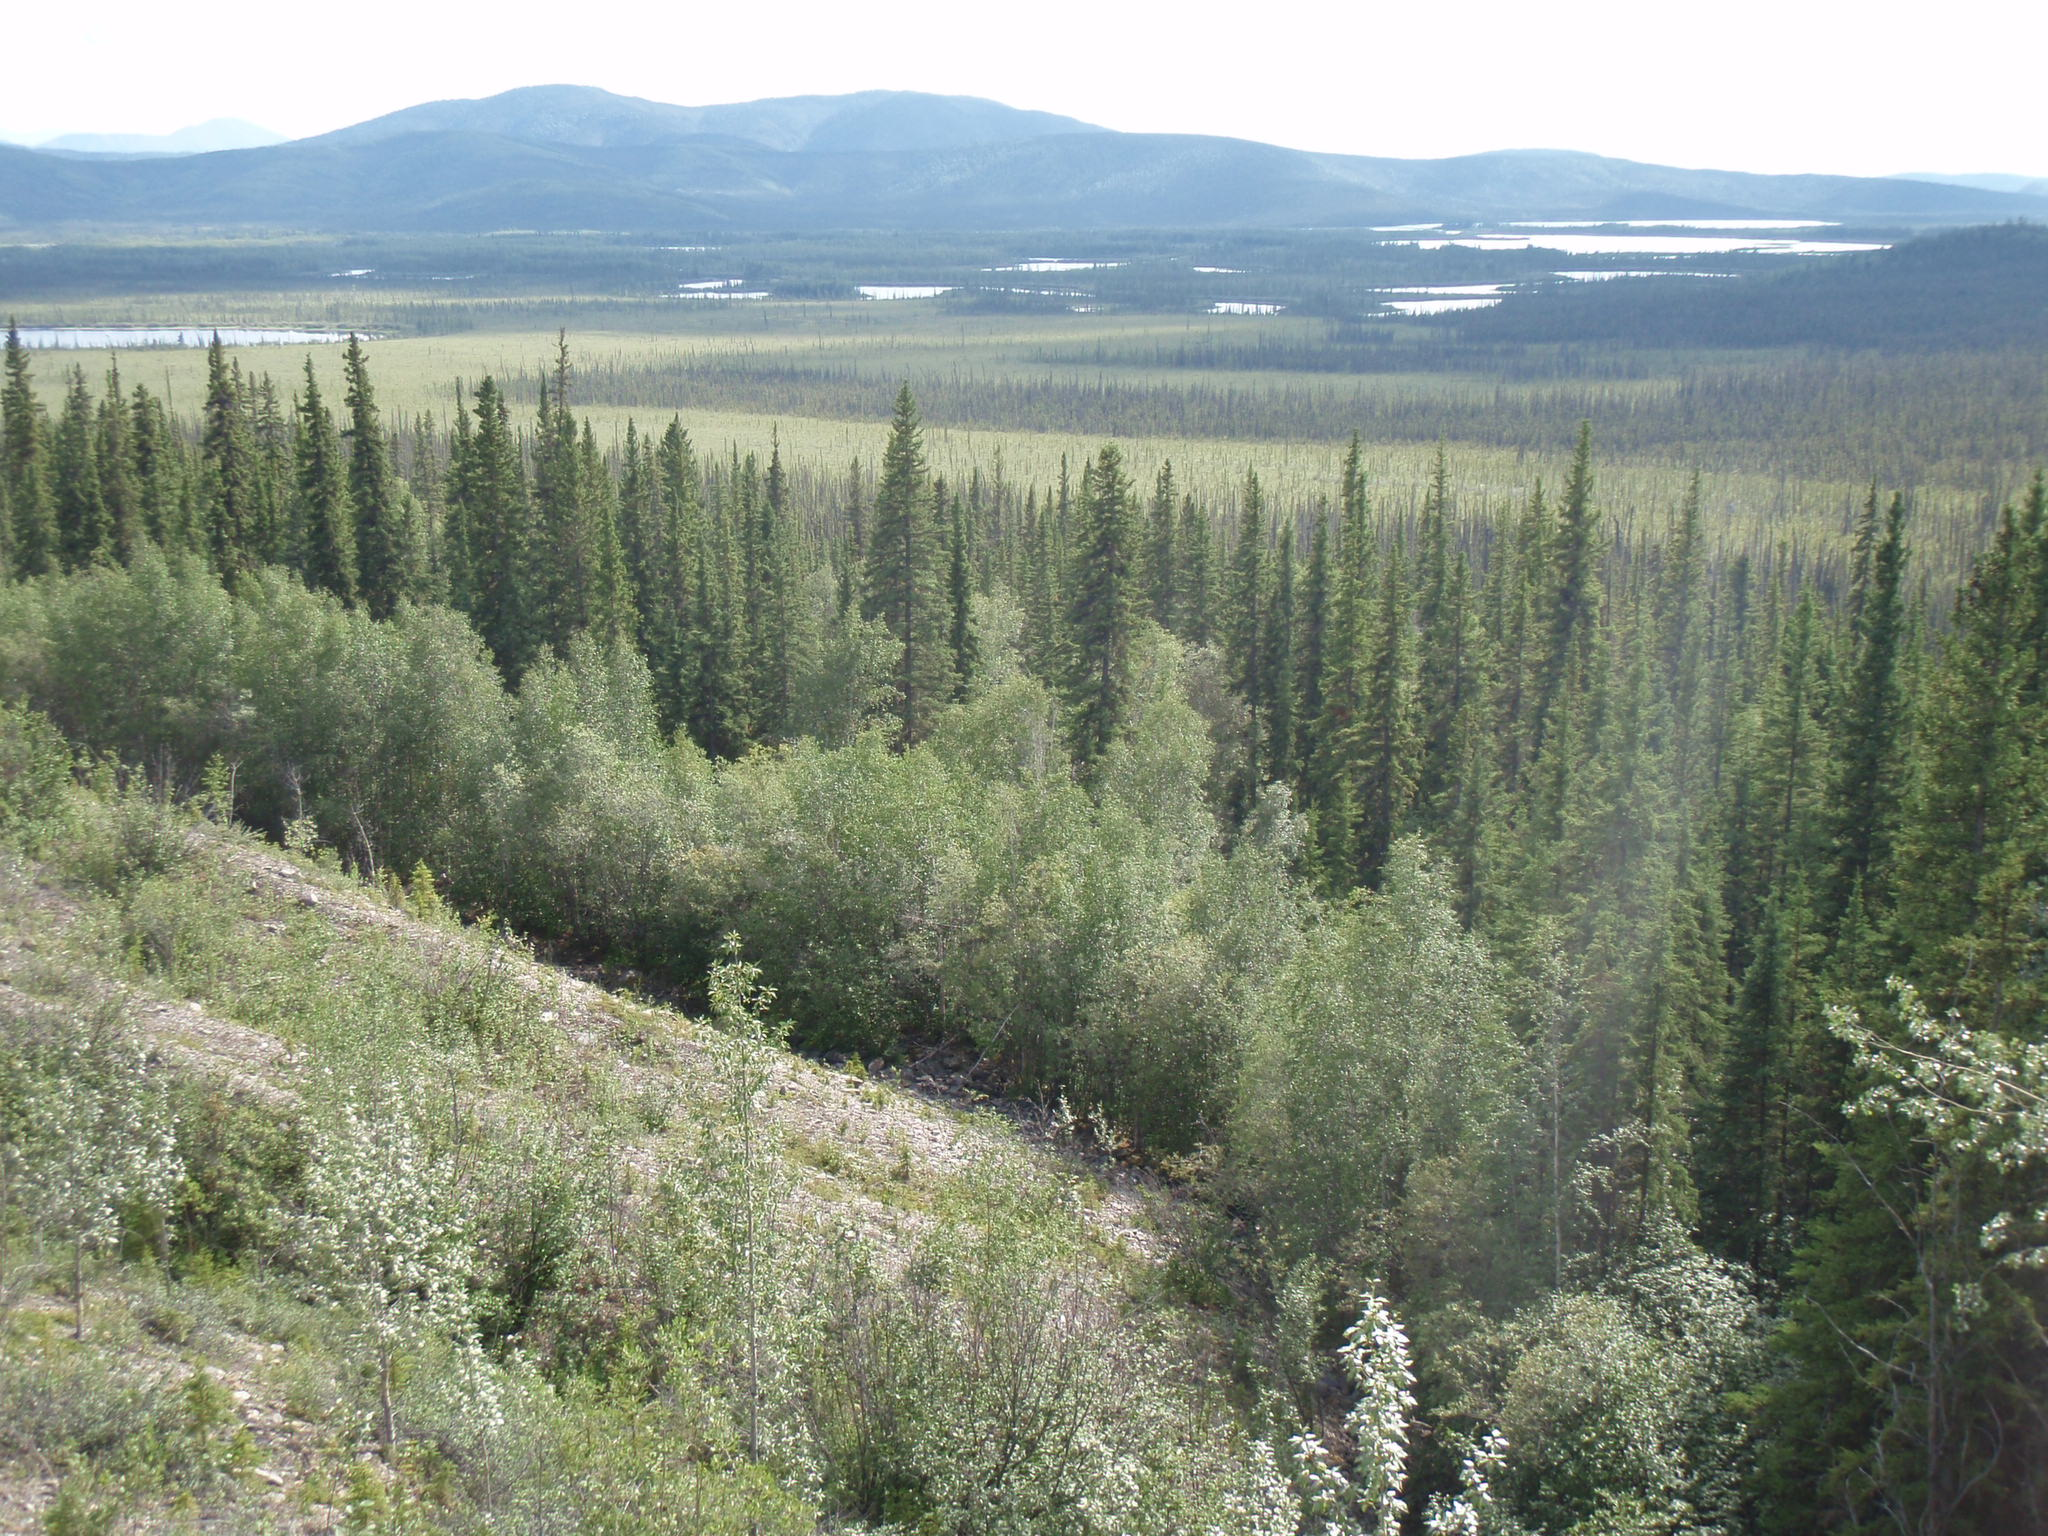 View South into the Teslin National Wildlife Refuge